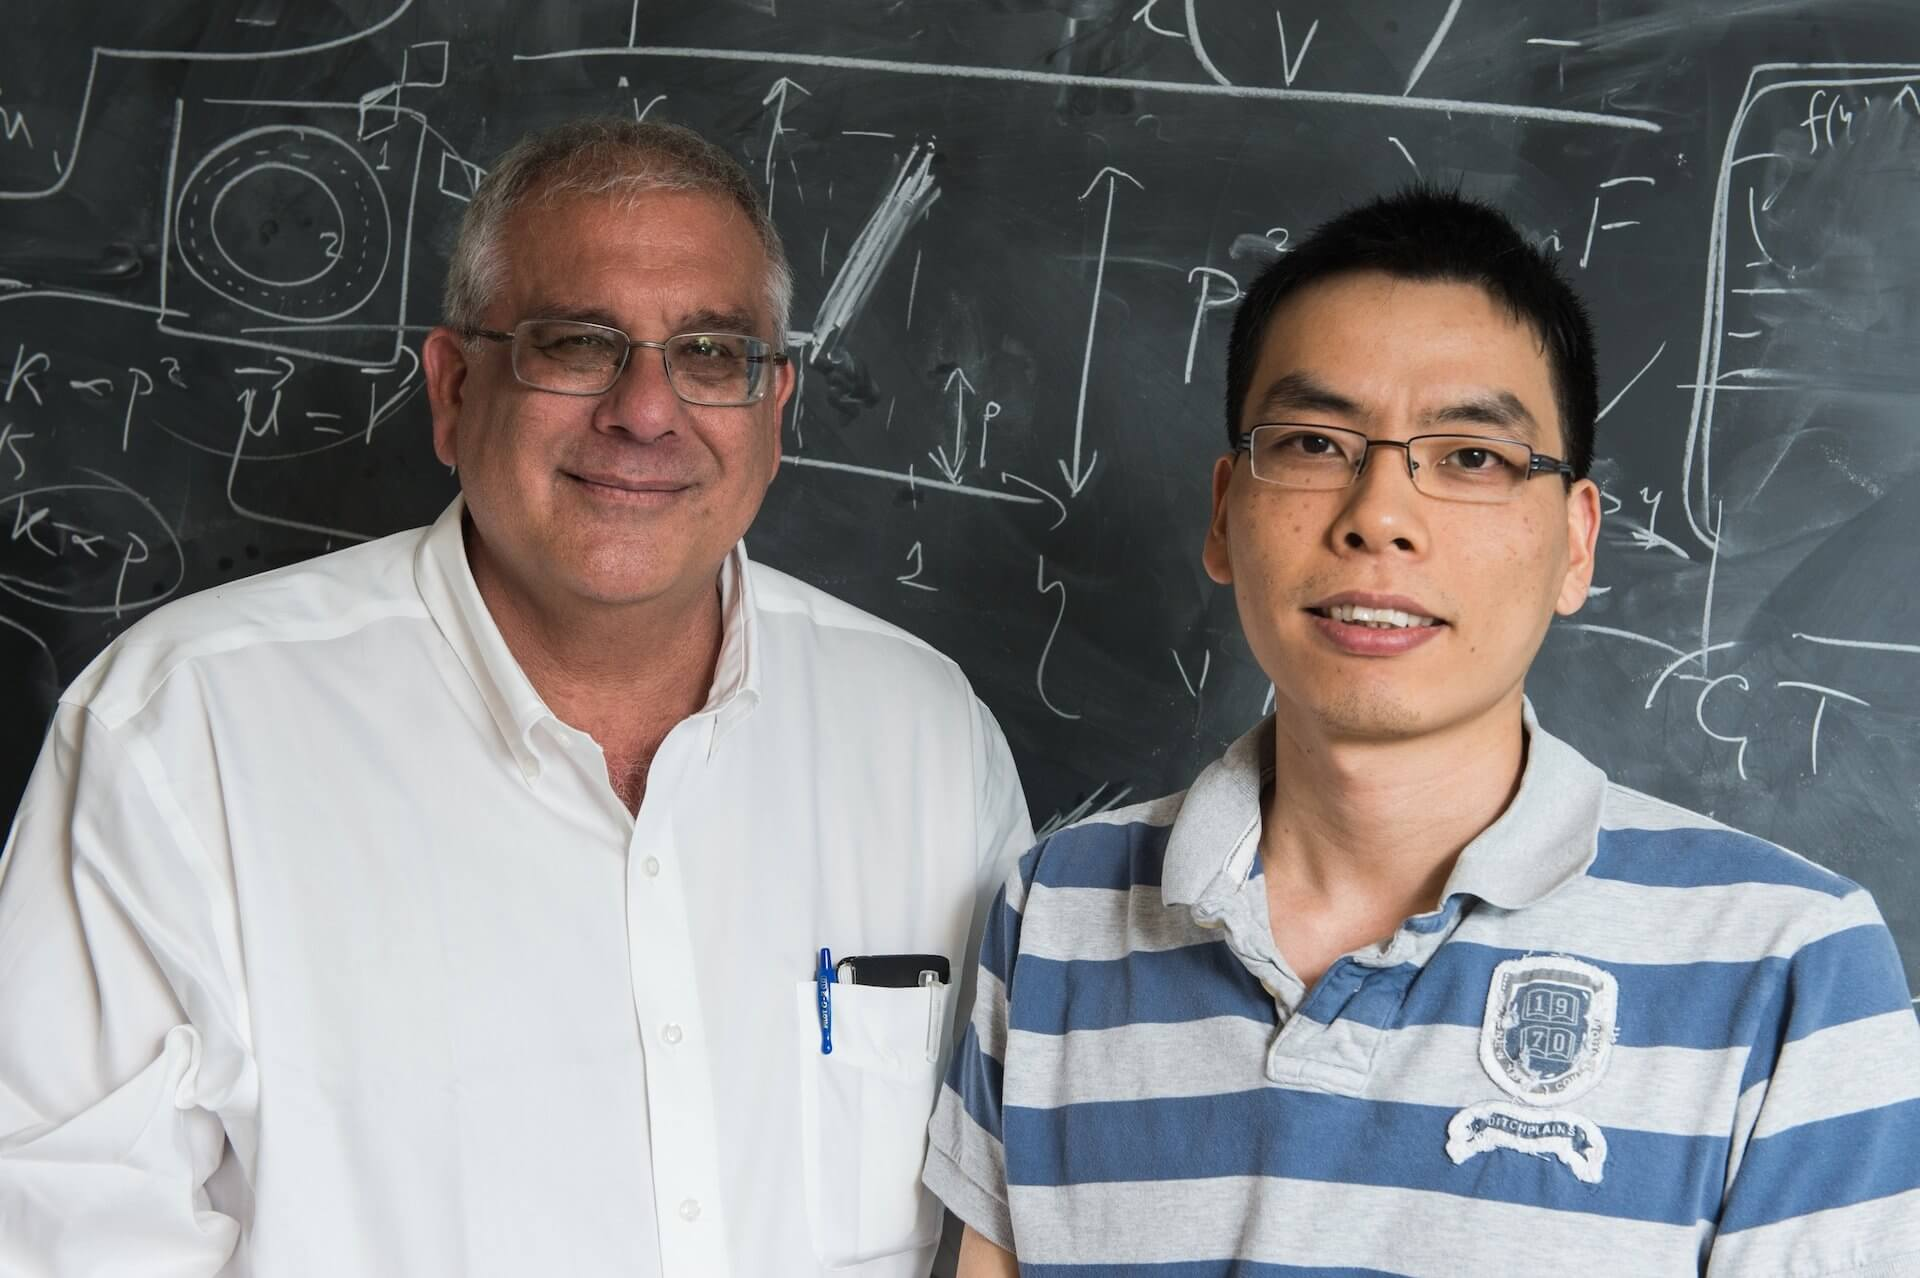 Rice University researchers Peter Wolynes, left, and Bin Zhang are working to formulate an energy-landscape theory for chromosomes. (Credit: Jeff Fitlow/Rice University)